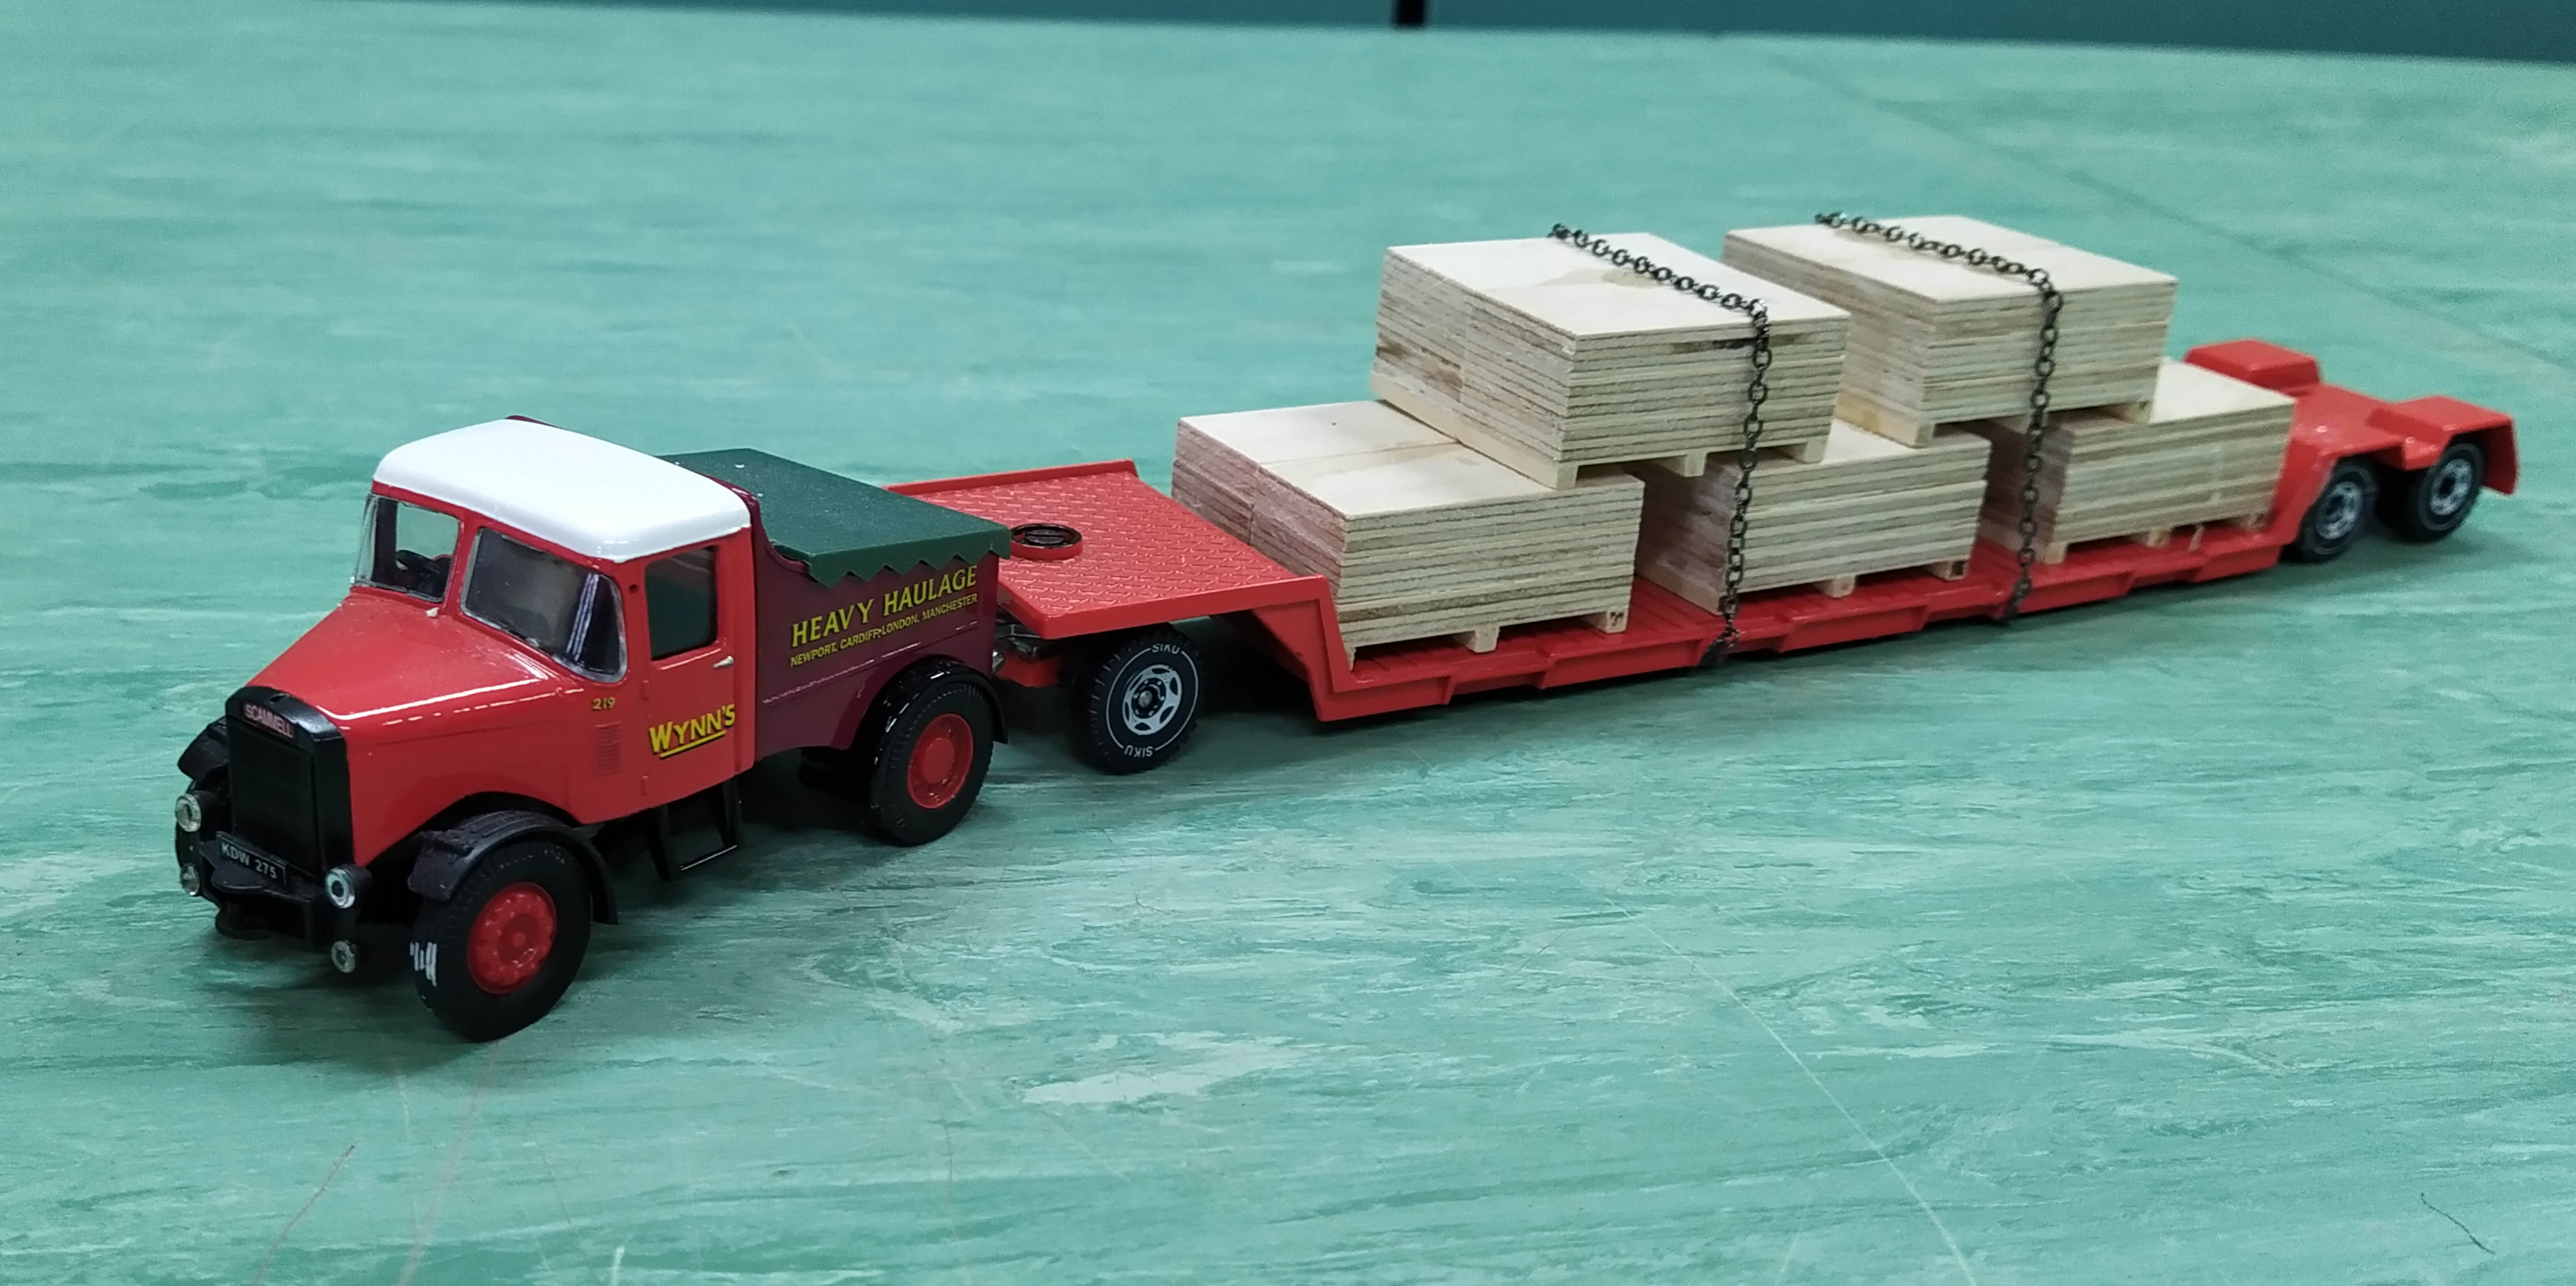 Two Corgi 1:50 scale heavy haulage vehicles with accessories